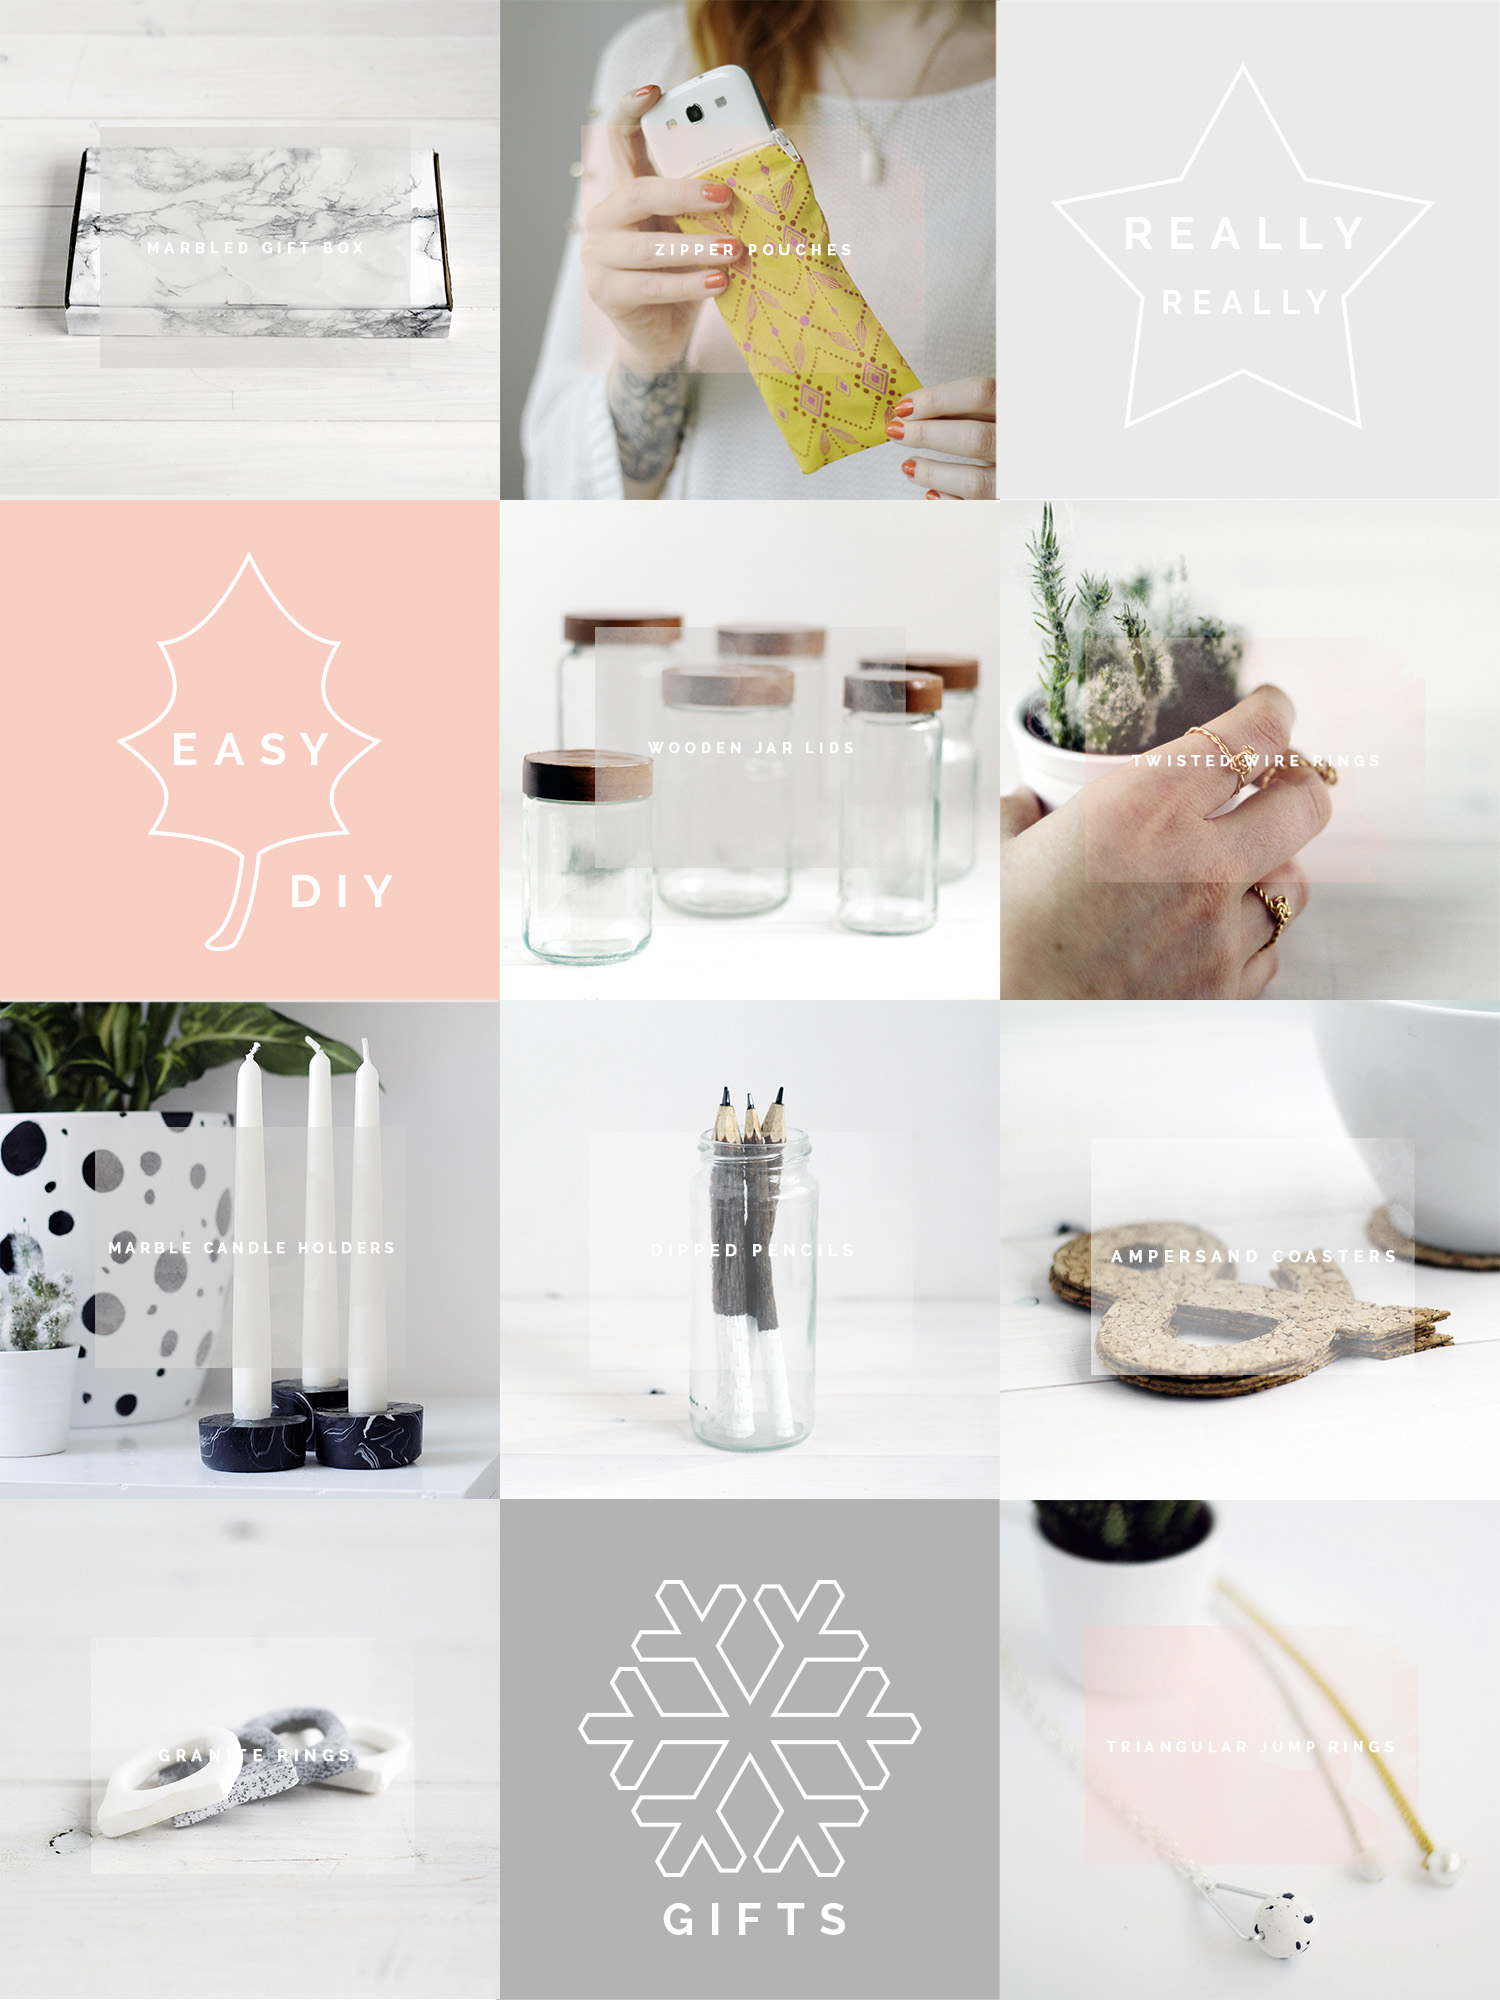 Really Really Easy DIY Gifts